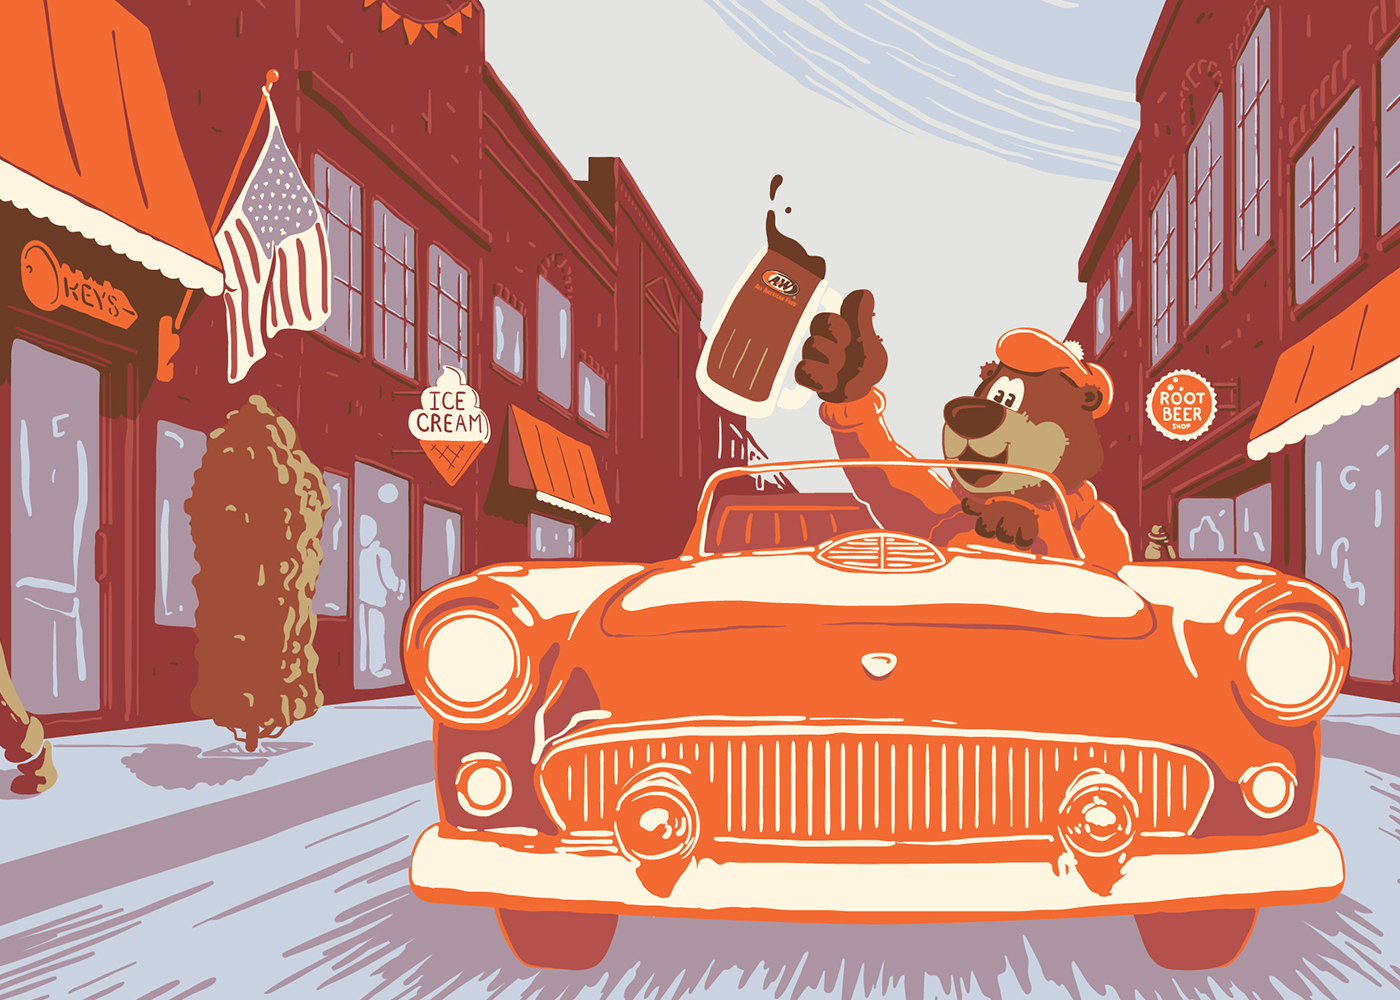 Artwork of Rooty the Great Root Bear driving in an orange car down Main Street. Rooty is holding a mug of A&W Root Beer in his right hand.